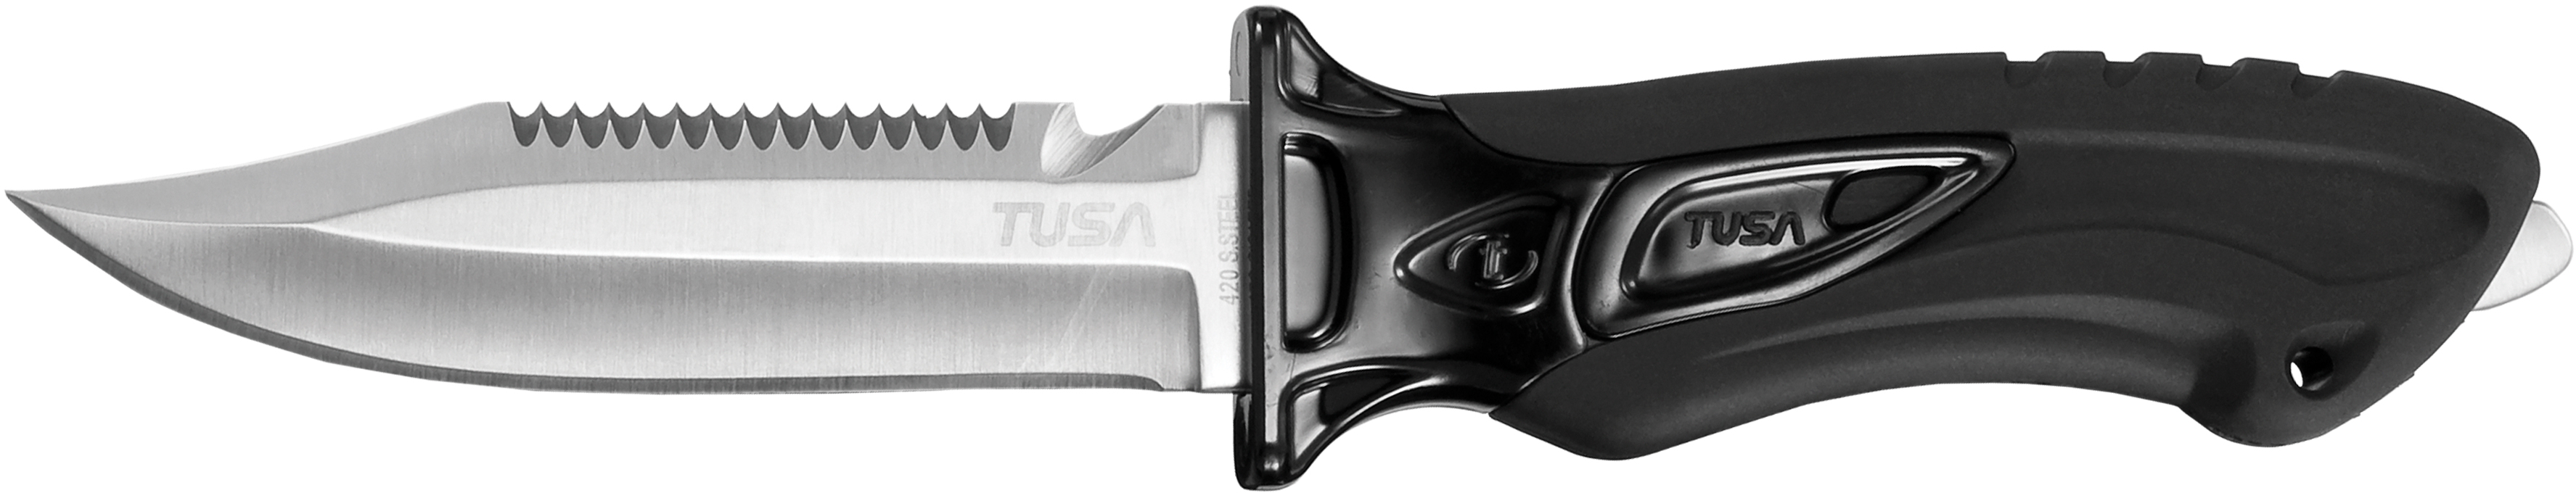 TUSA X-Pert II Drop Point Knife